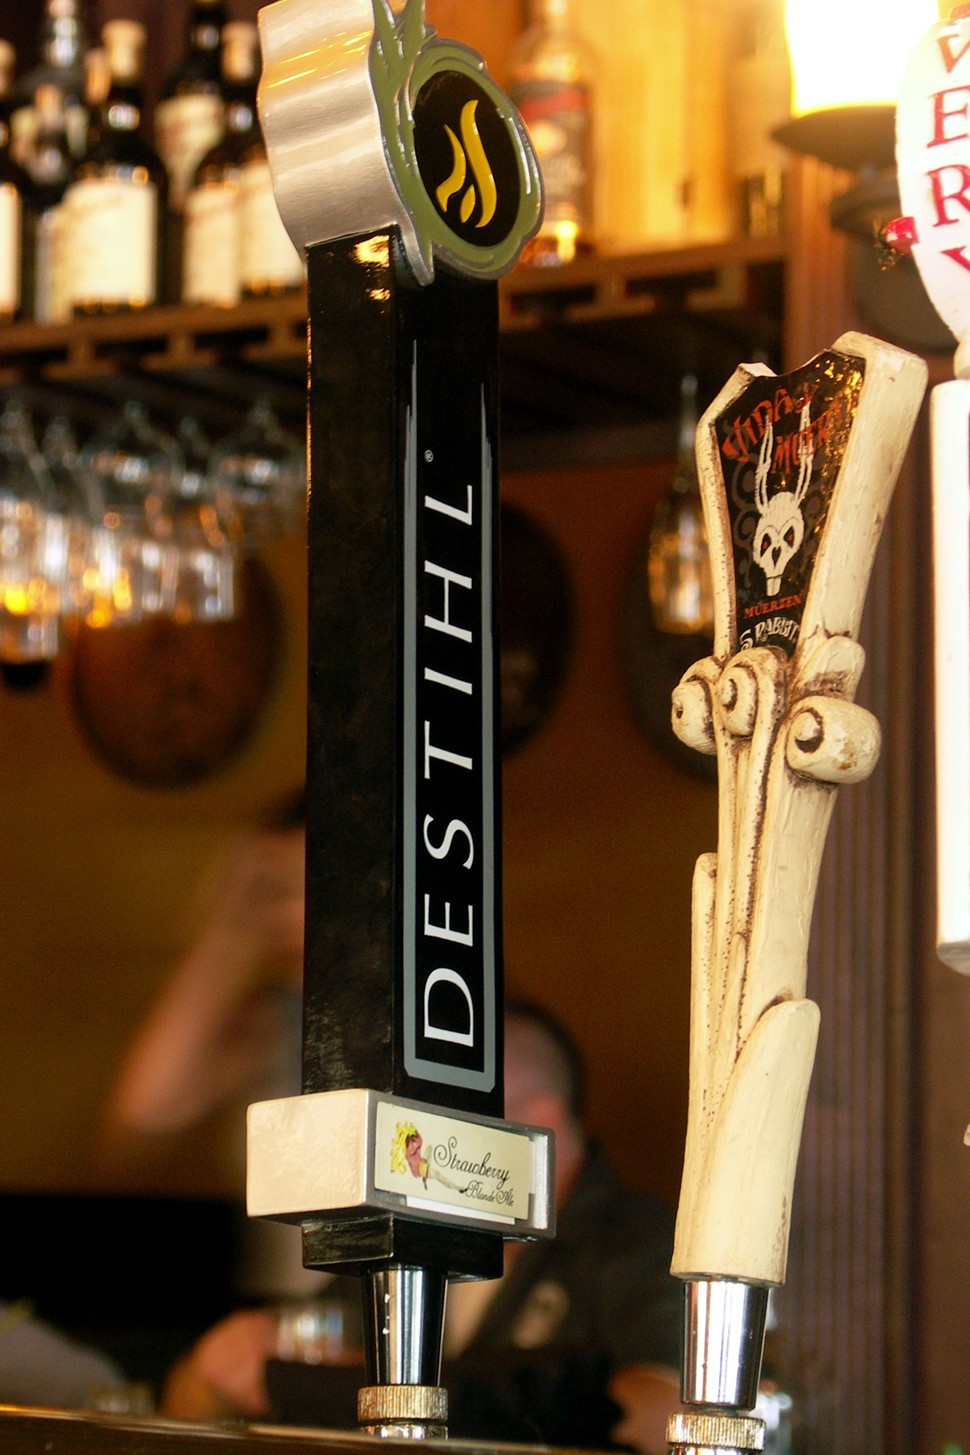 A Destihl tap handle, spotted in the wild at Fountainhead